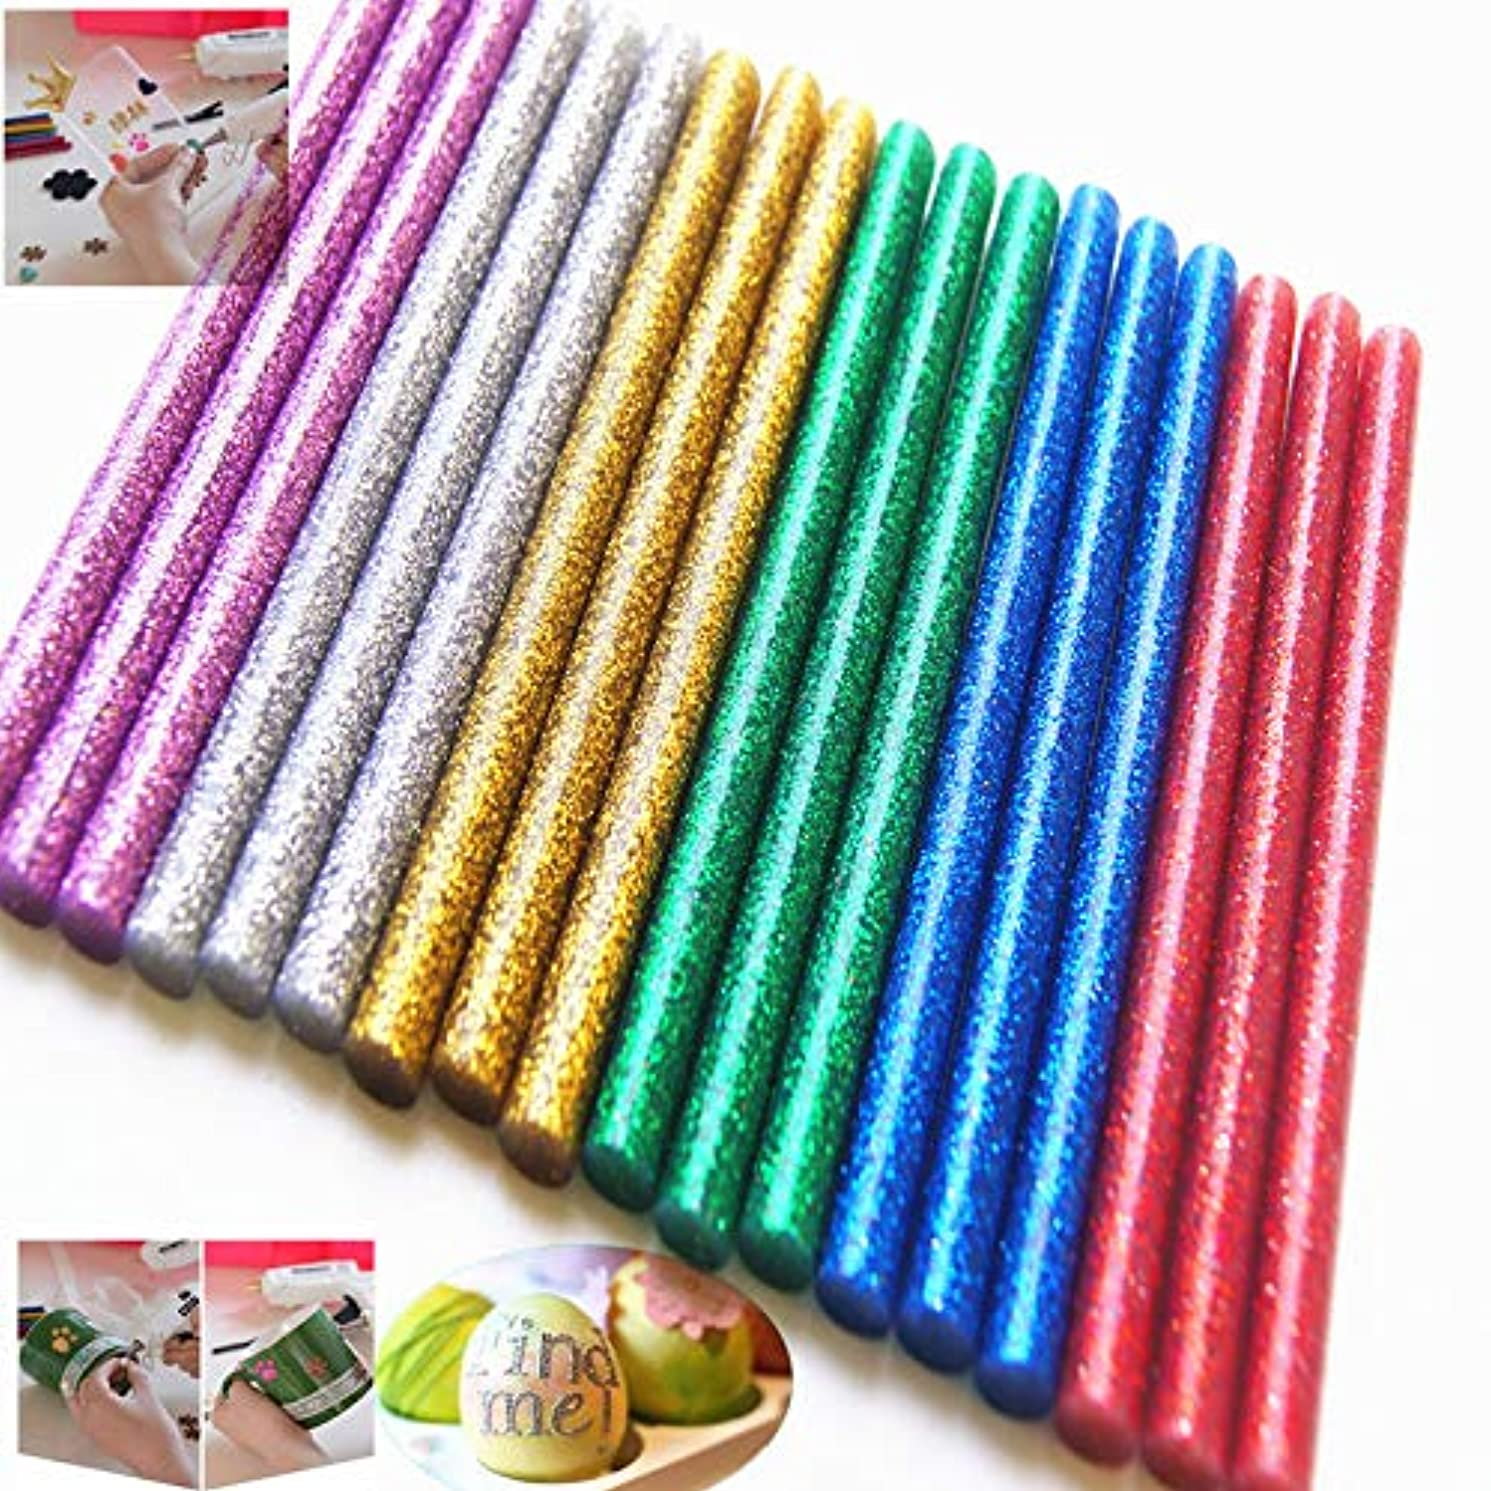 WeiMo 120+10 pcs Colorful Hot Melt Glue Stick, Small Glue Gun Used Long Shape Hot Melt Glue Stick for Art Craft DIY Home Decoration Sealing and Gluing (130)